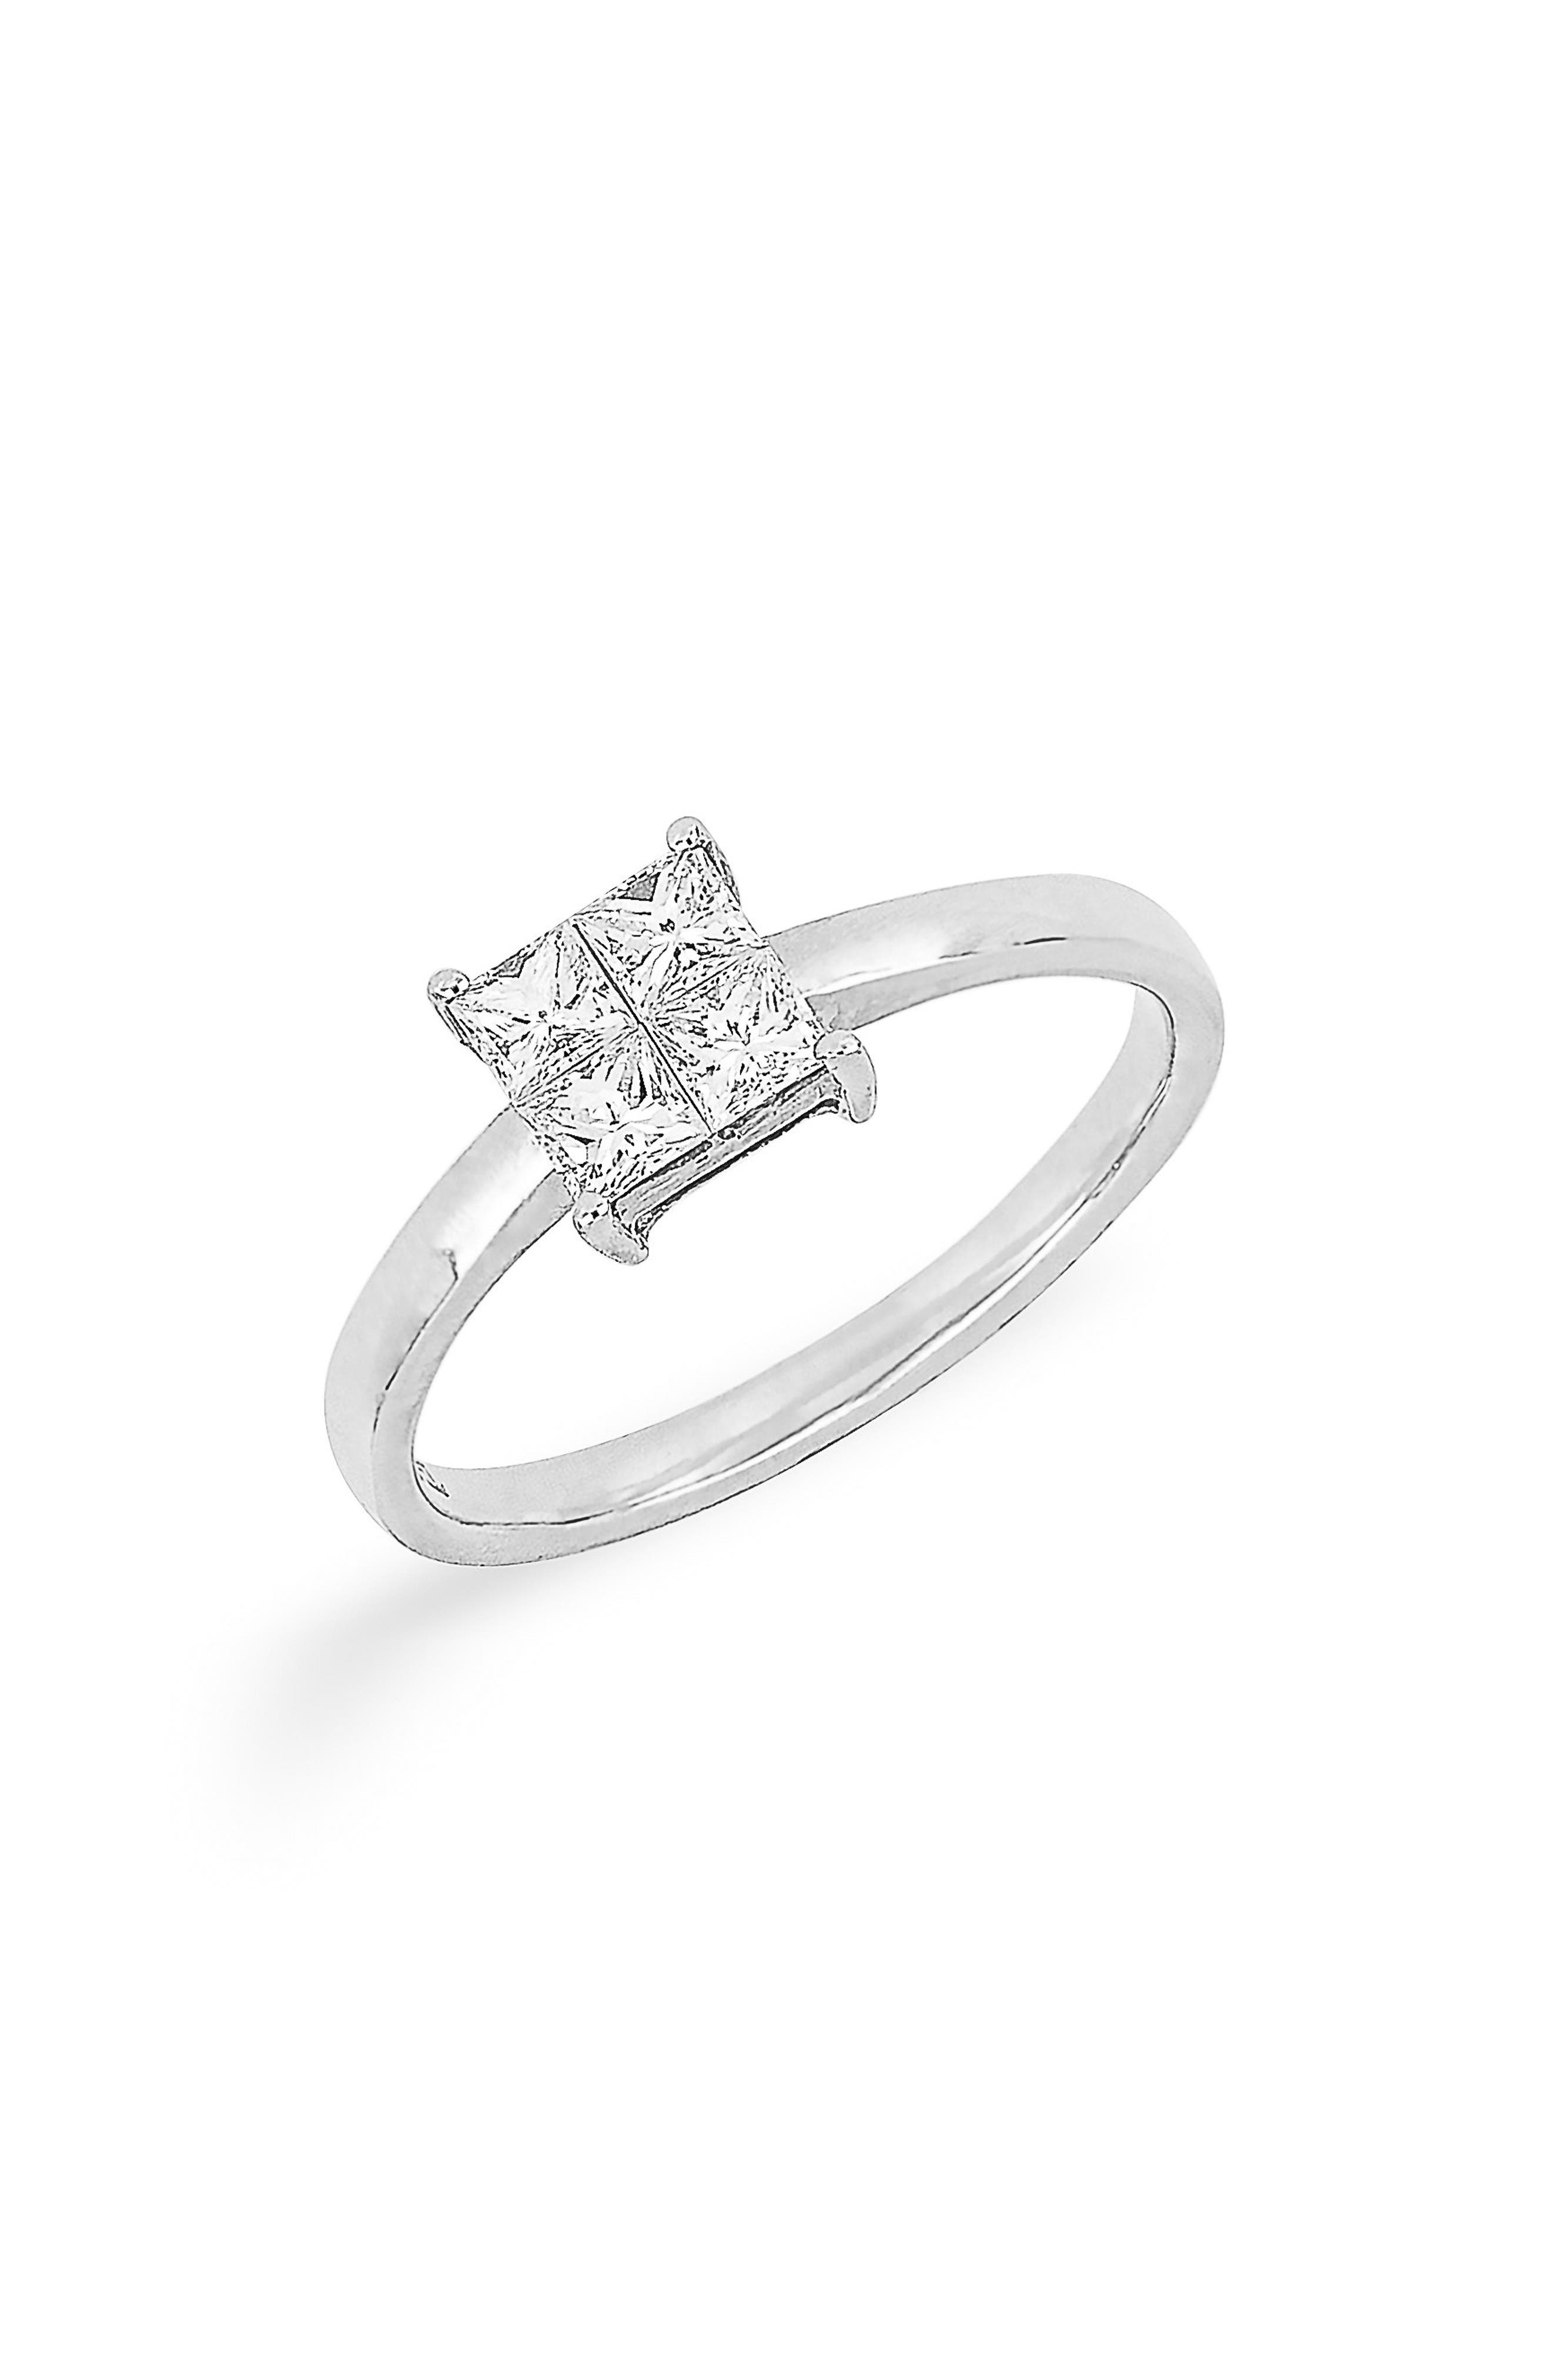 Alternate Image 1 Selected - Bony Levy Princess Cut Diamond Ring (Nordstrom Exclusive)